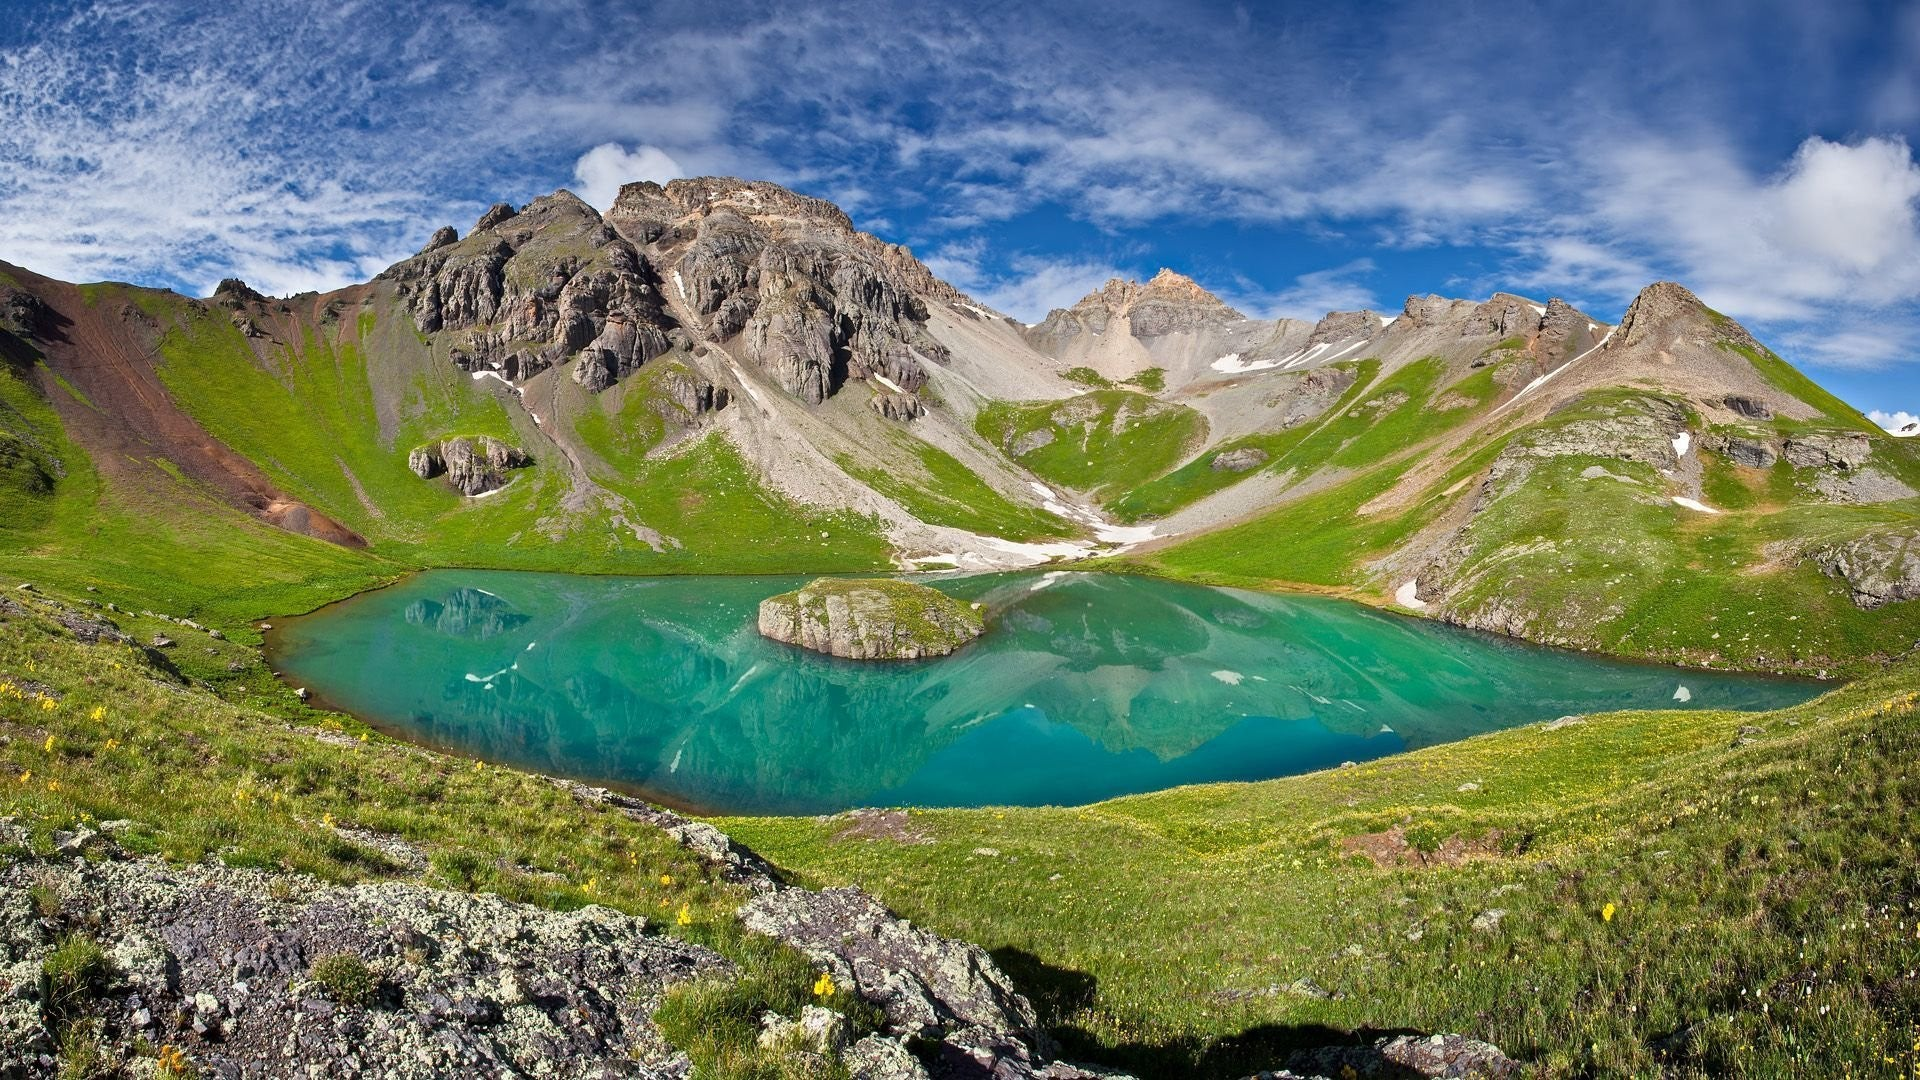 6 Amazing Hidden Lakes in Colorado You Probably Never Knew Existed